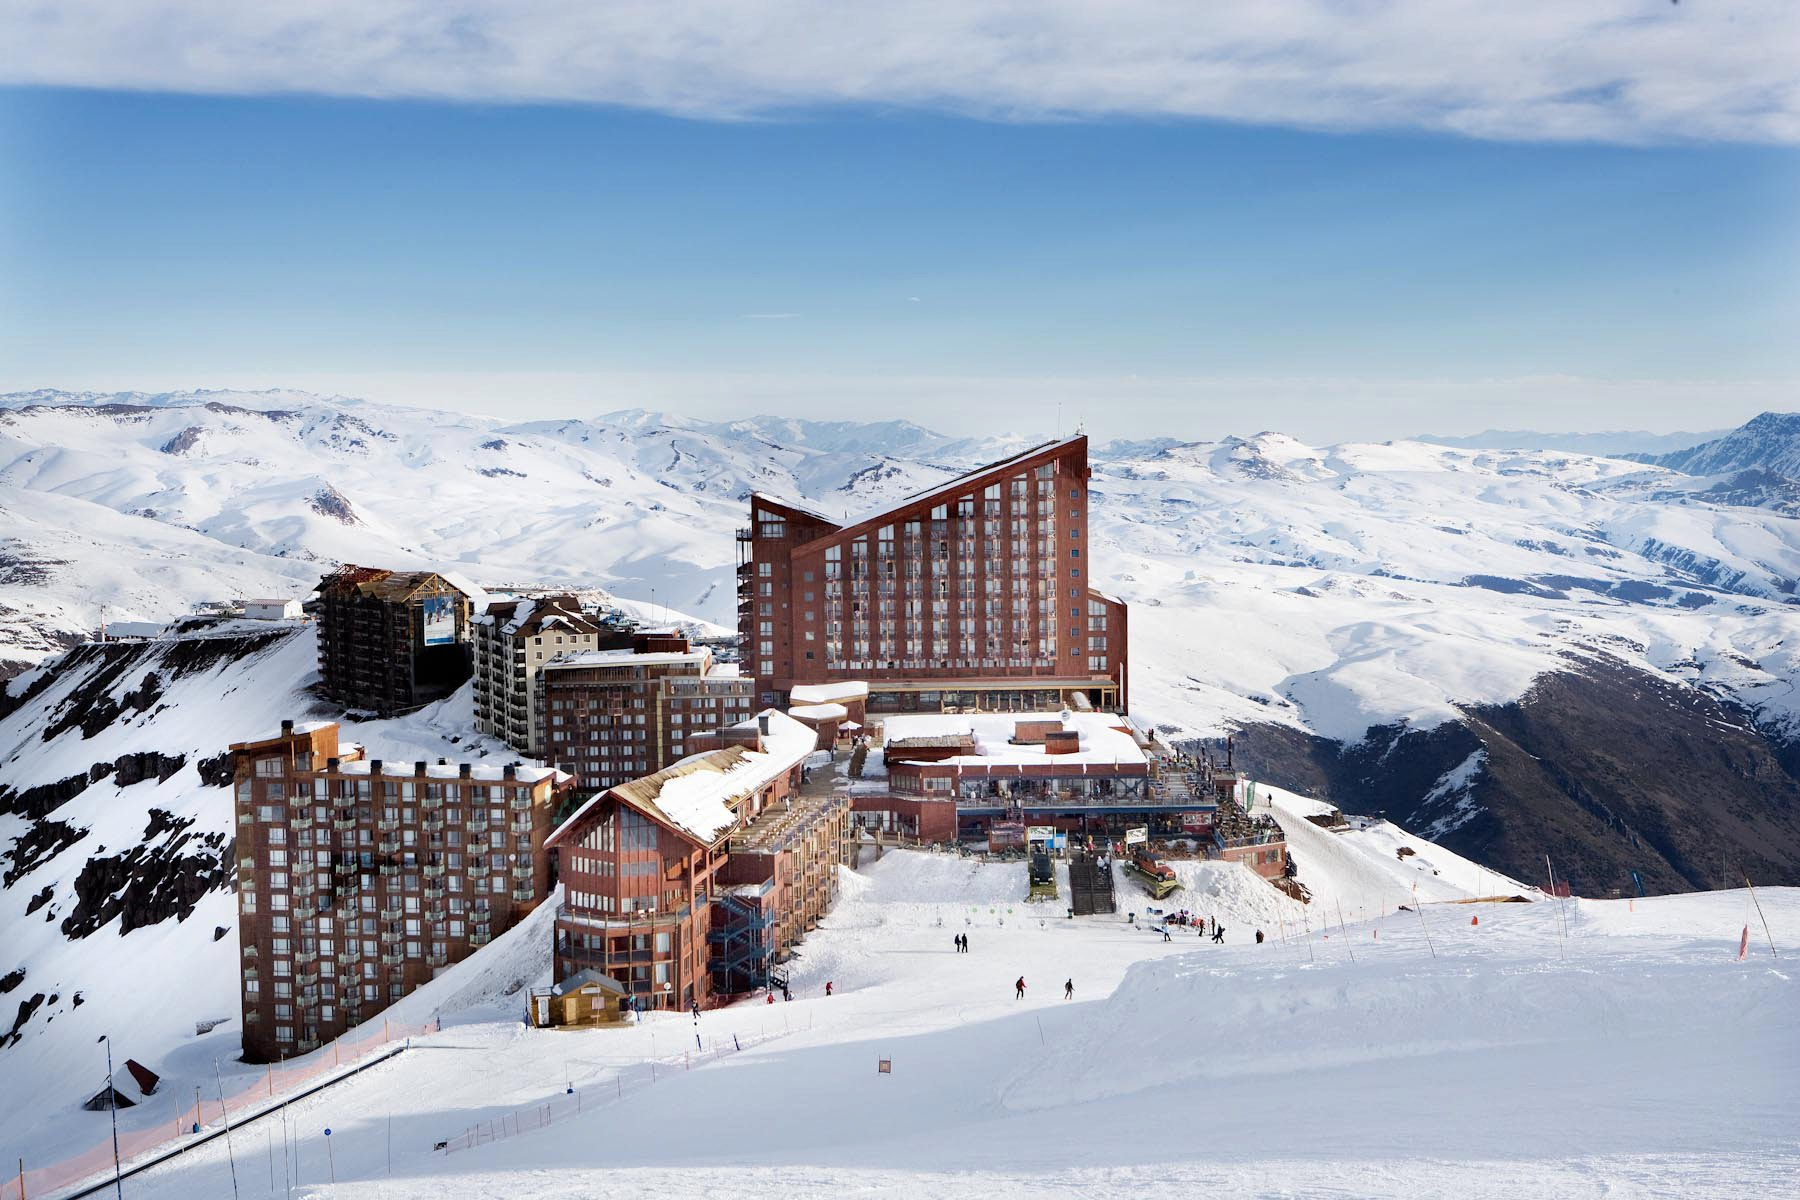 vista de hotel no valle nevado